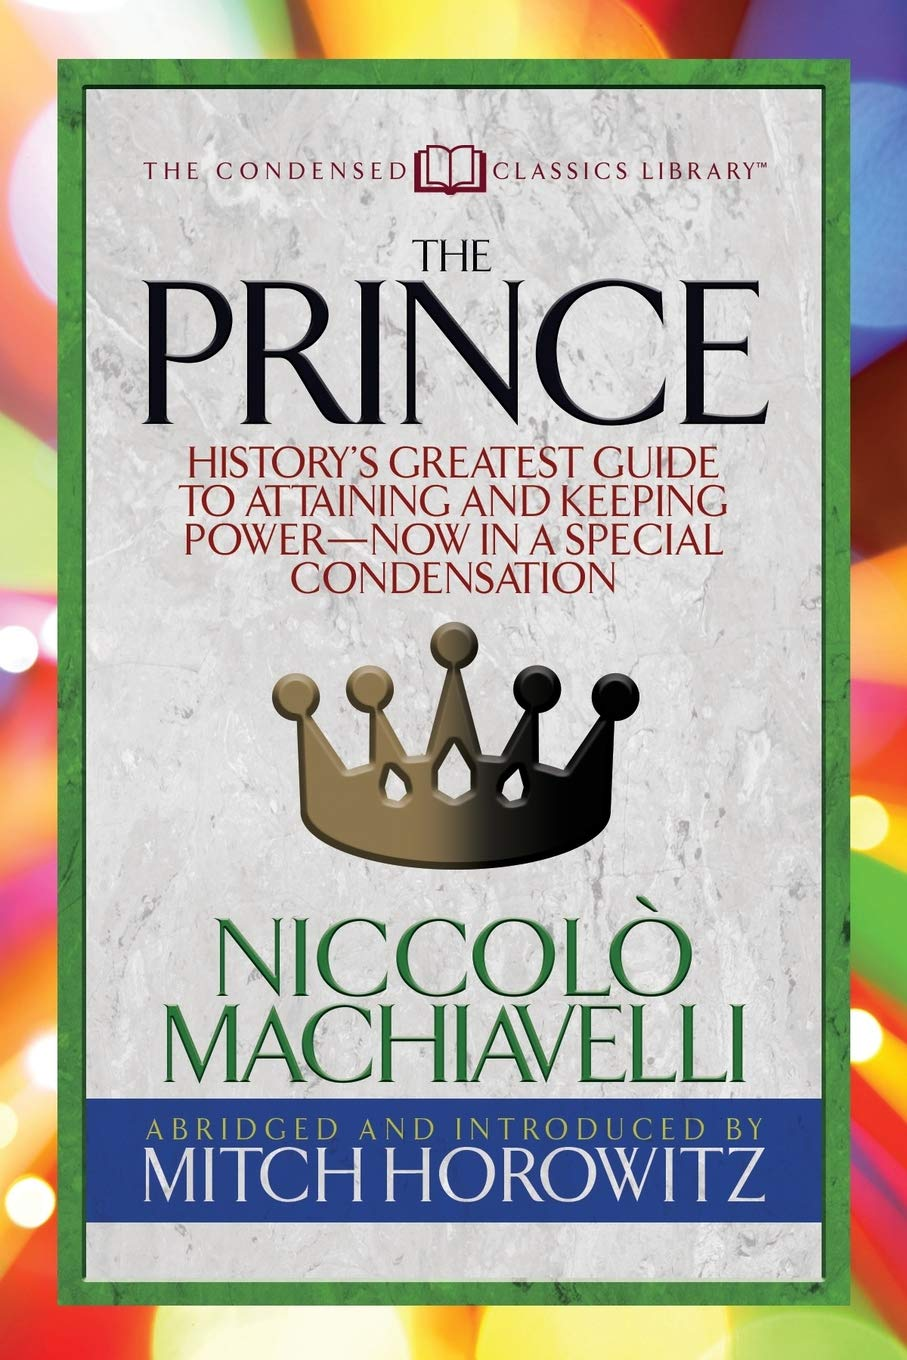 The Prince (Condensed Classics): History's Greatest Guide to Attaining and Keeping Power― Now In a Special Condensation